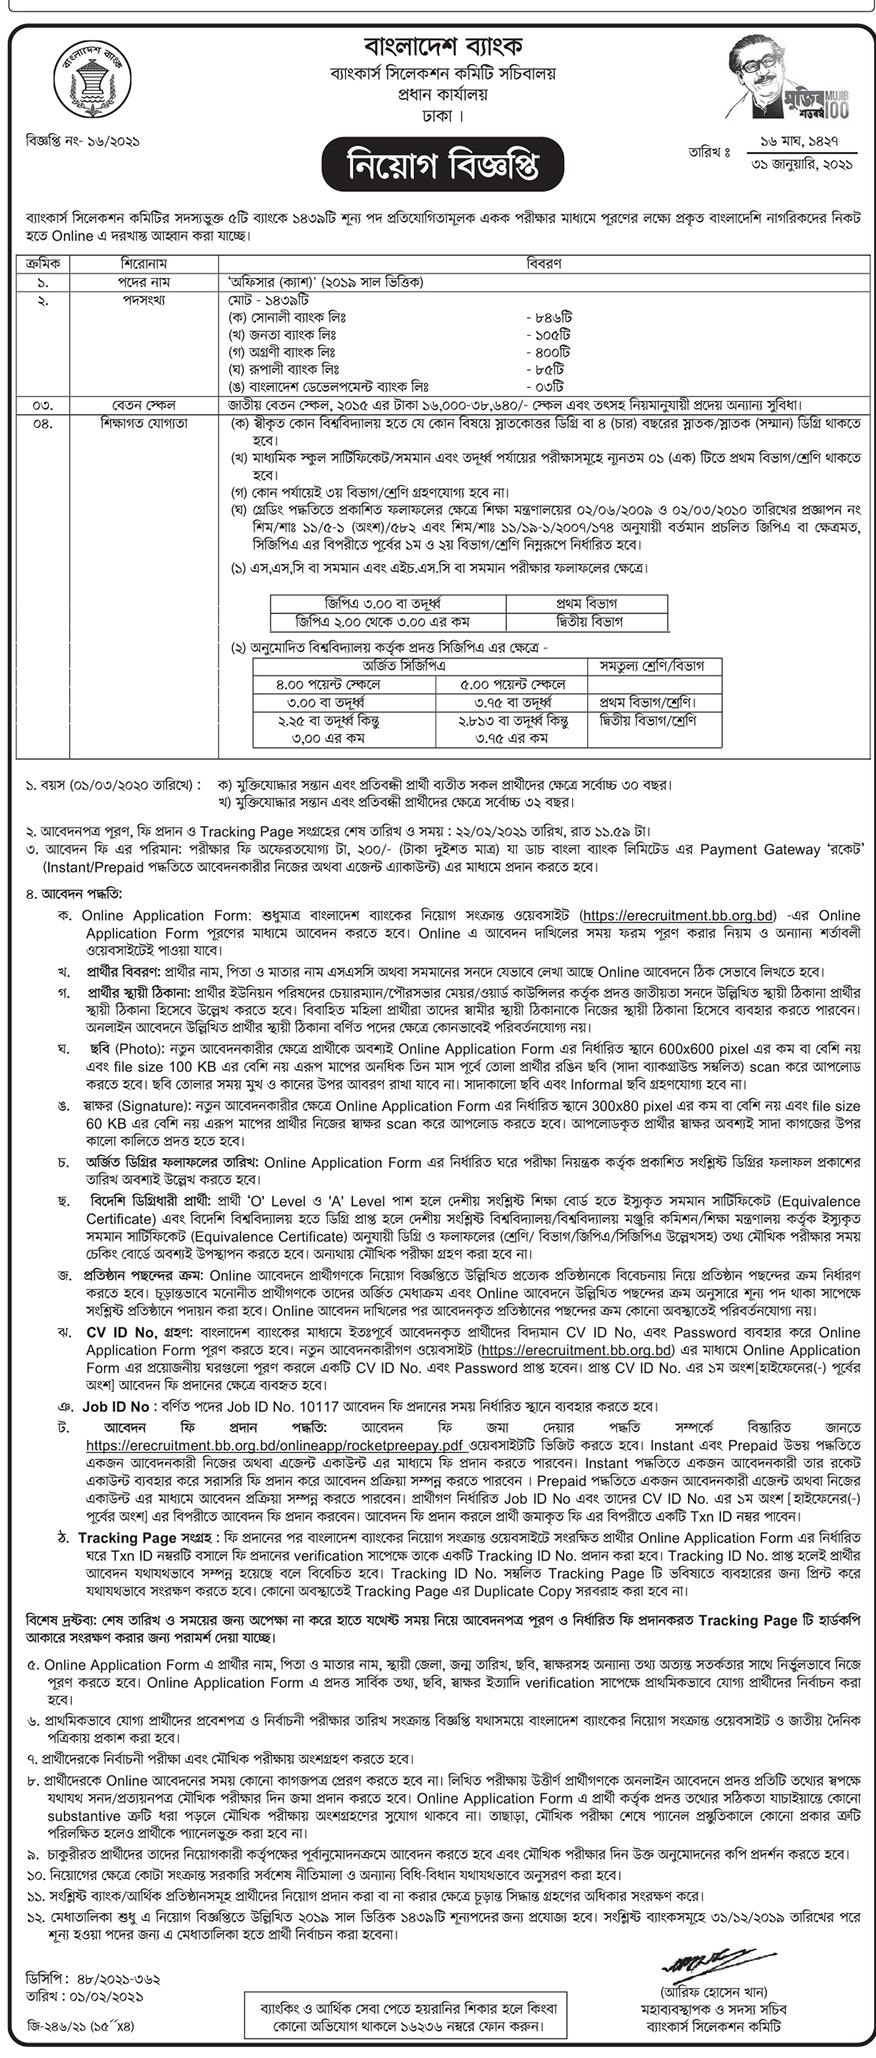 Sonali Bank Limited job circular 2021